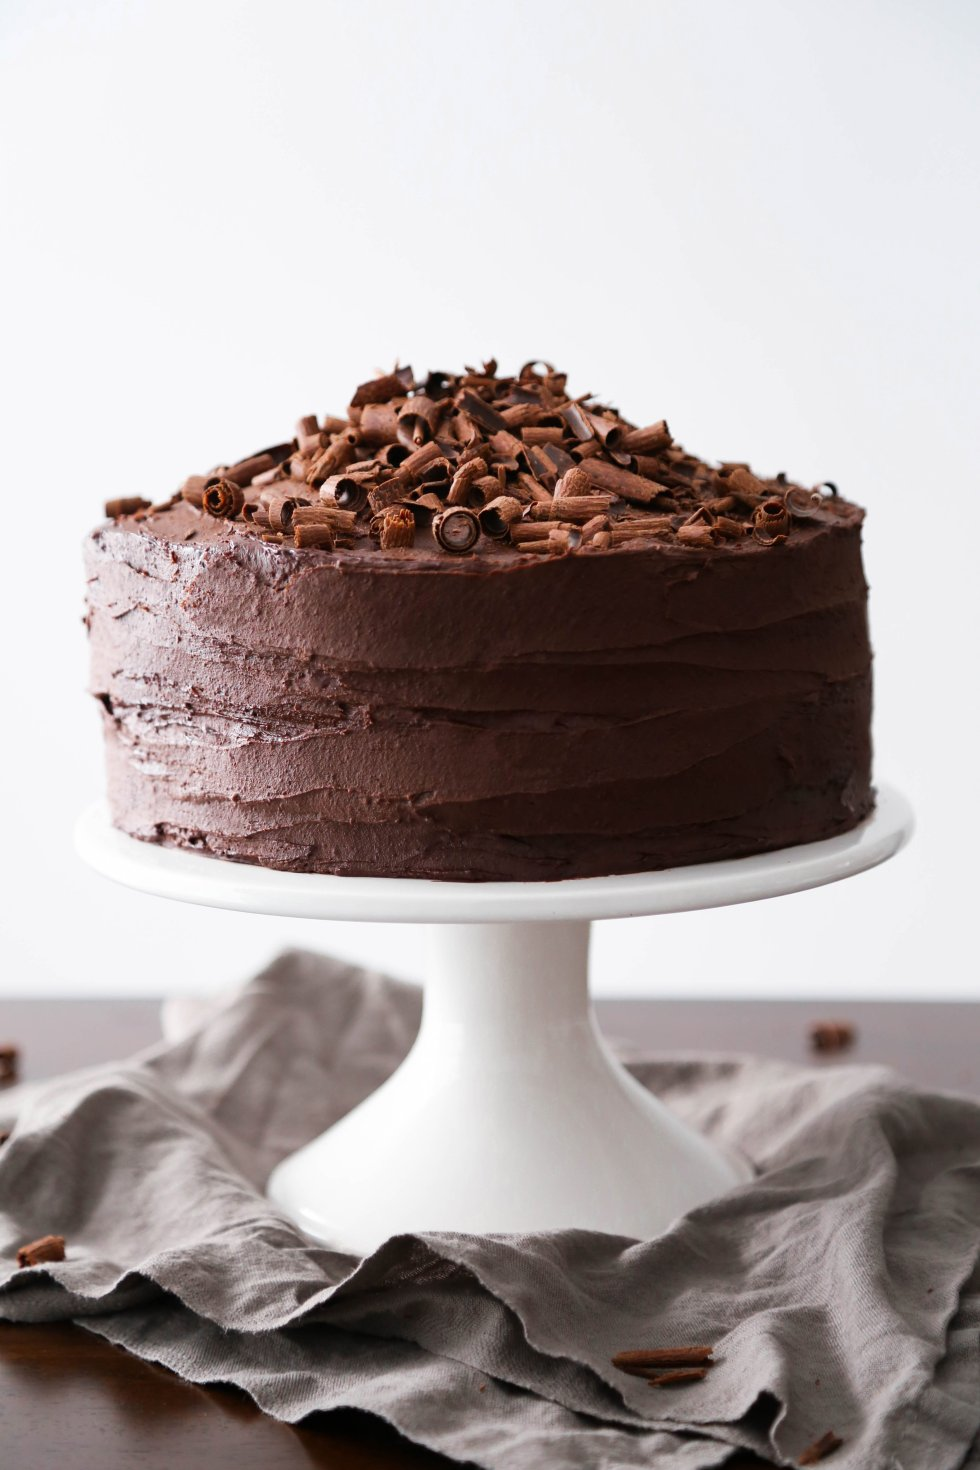 Vegan Chocolate Cake with Whipped Ganache | Gluten and Refined Sugar Free